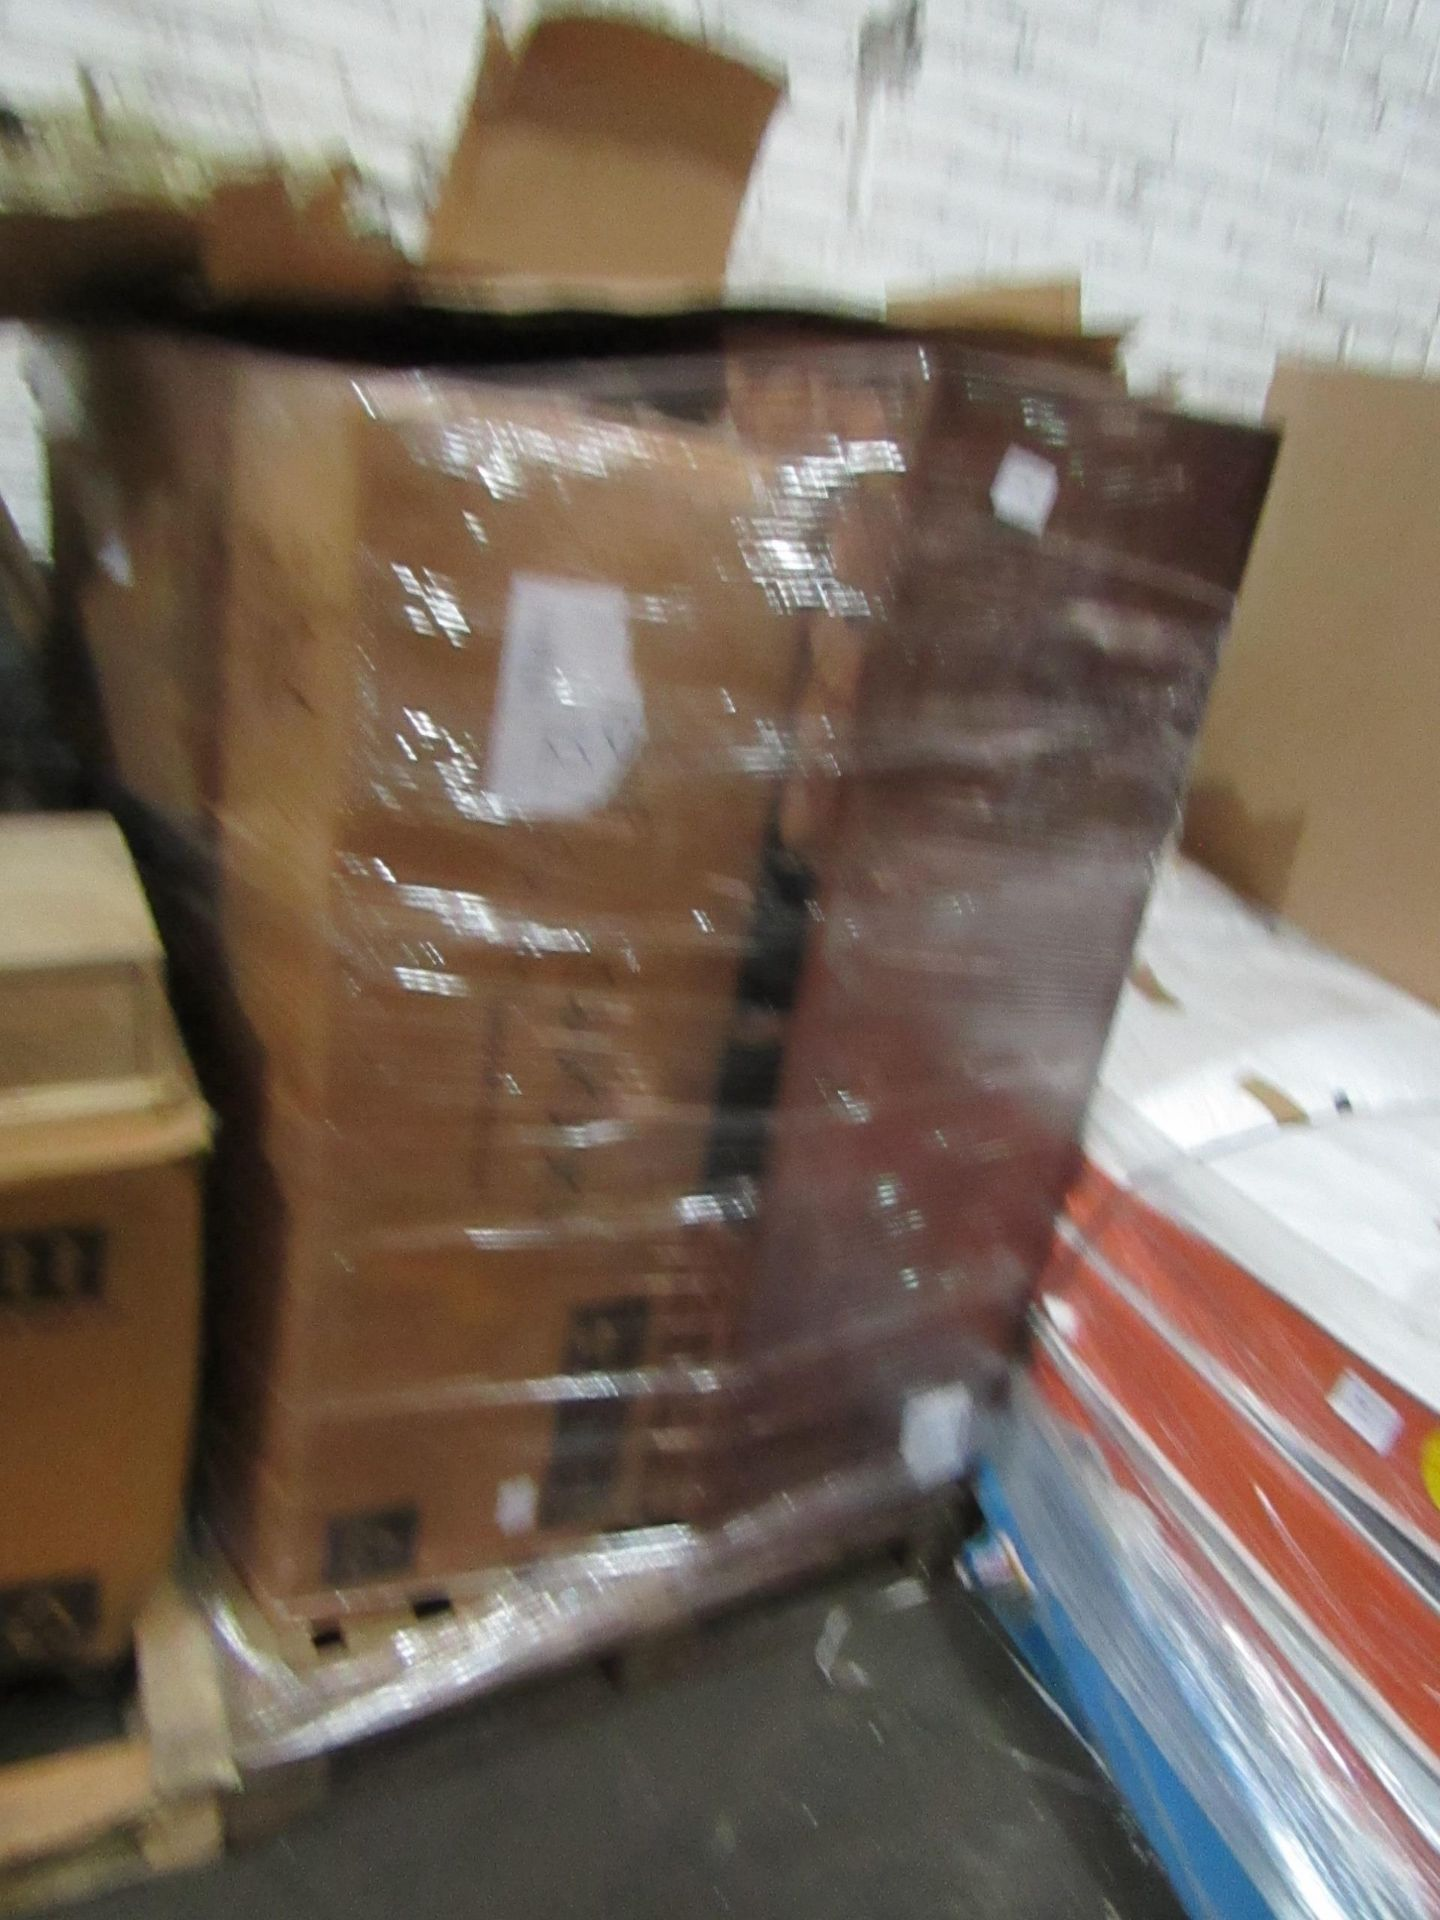   1X   PALLET OF swoon B.E.R FURNITURE, UNMANIFESTED, WE HAVE NO IDEA WHAT IS ON THESE PALLETS OR